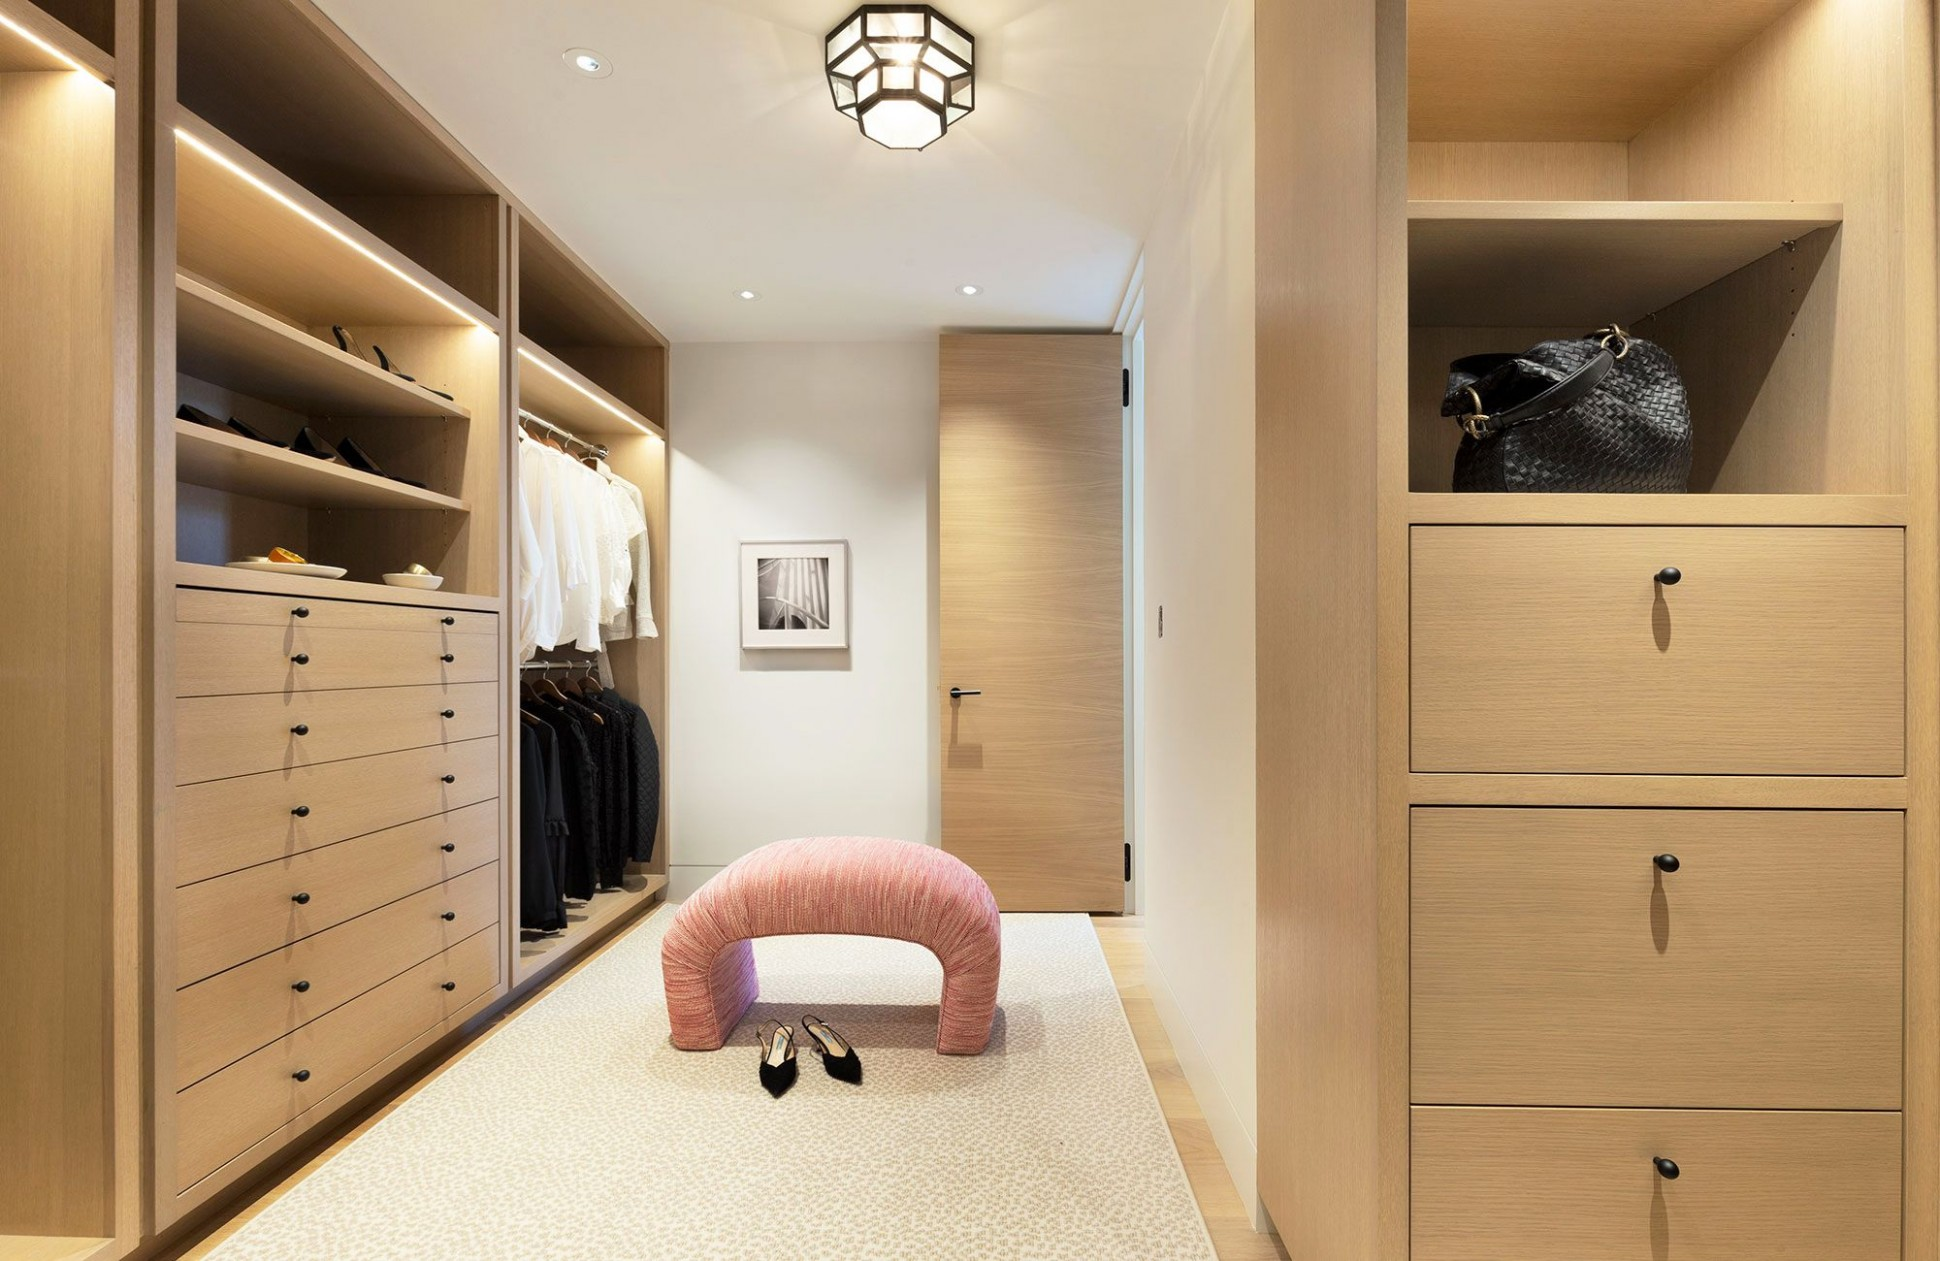 8 Best Walk In Closet Storage Ideas and Designs for Master Bedrooms - Closet Ideas Master Bedroom